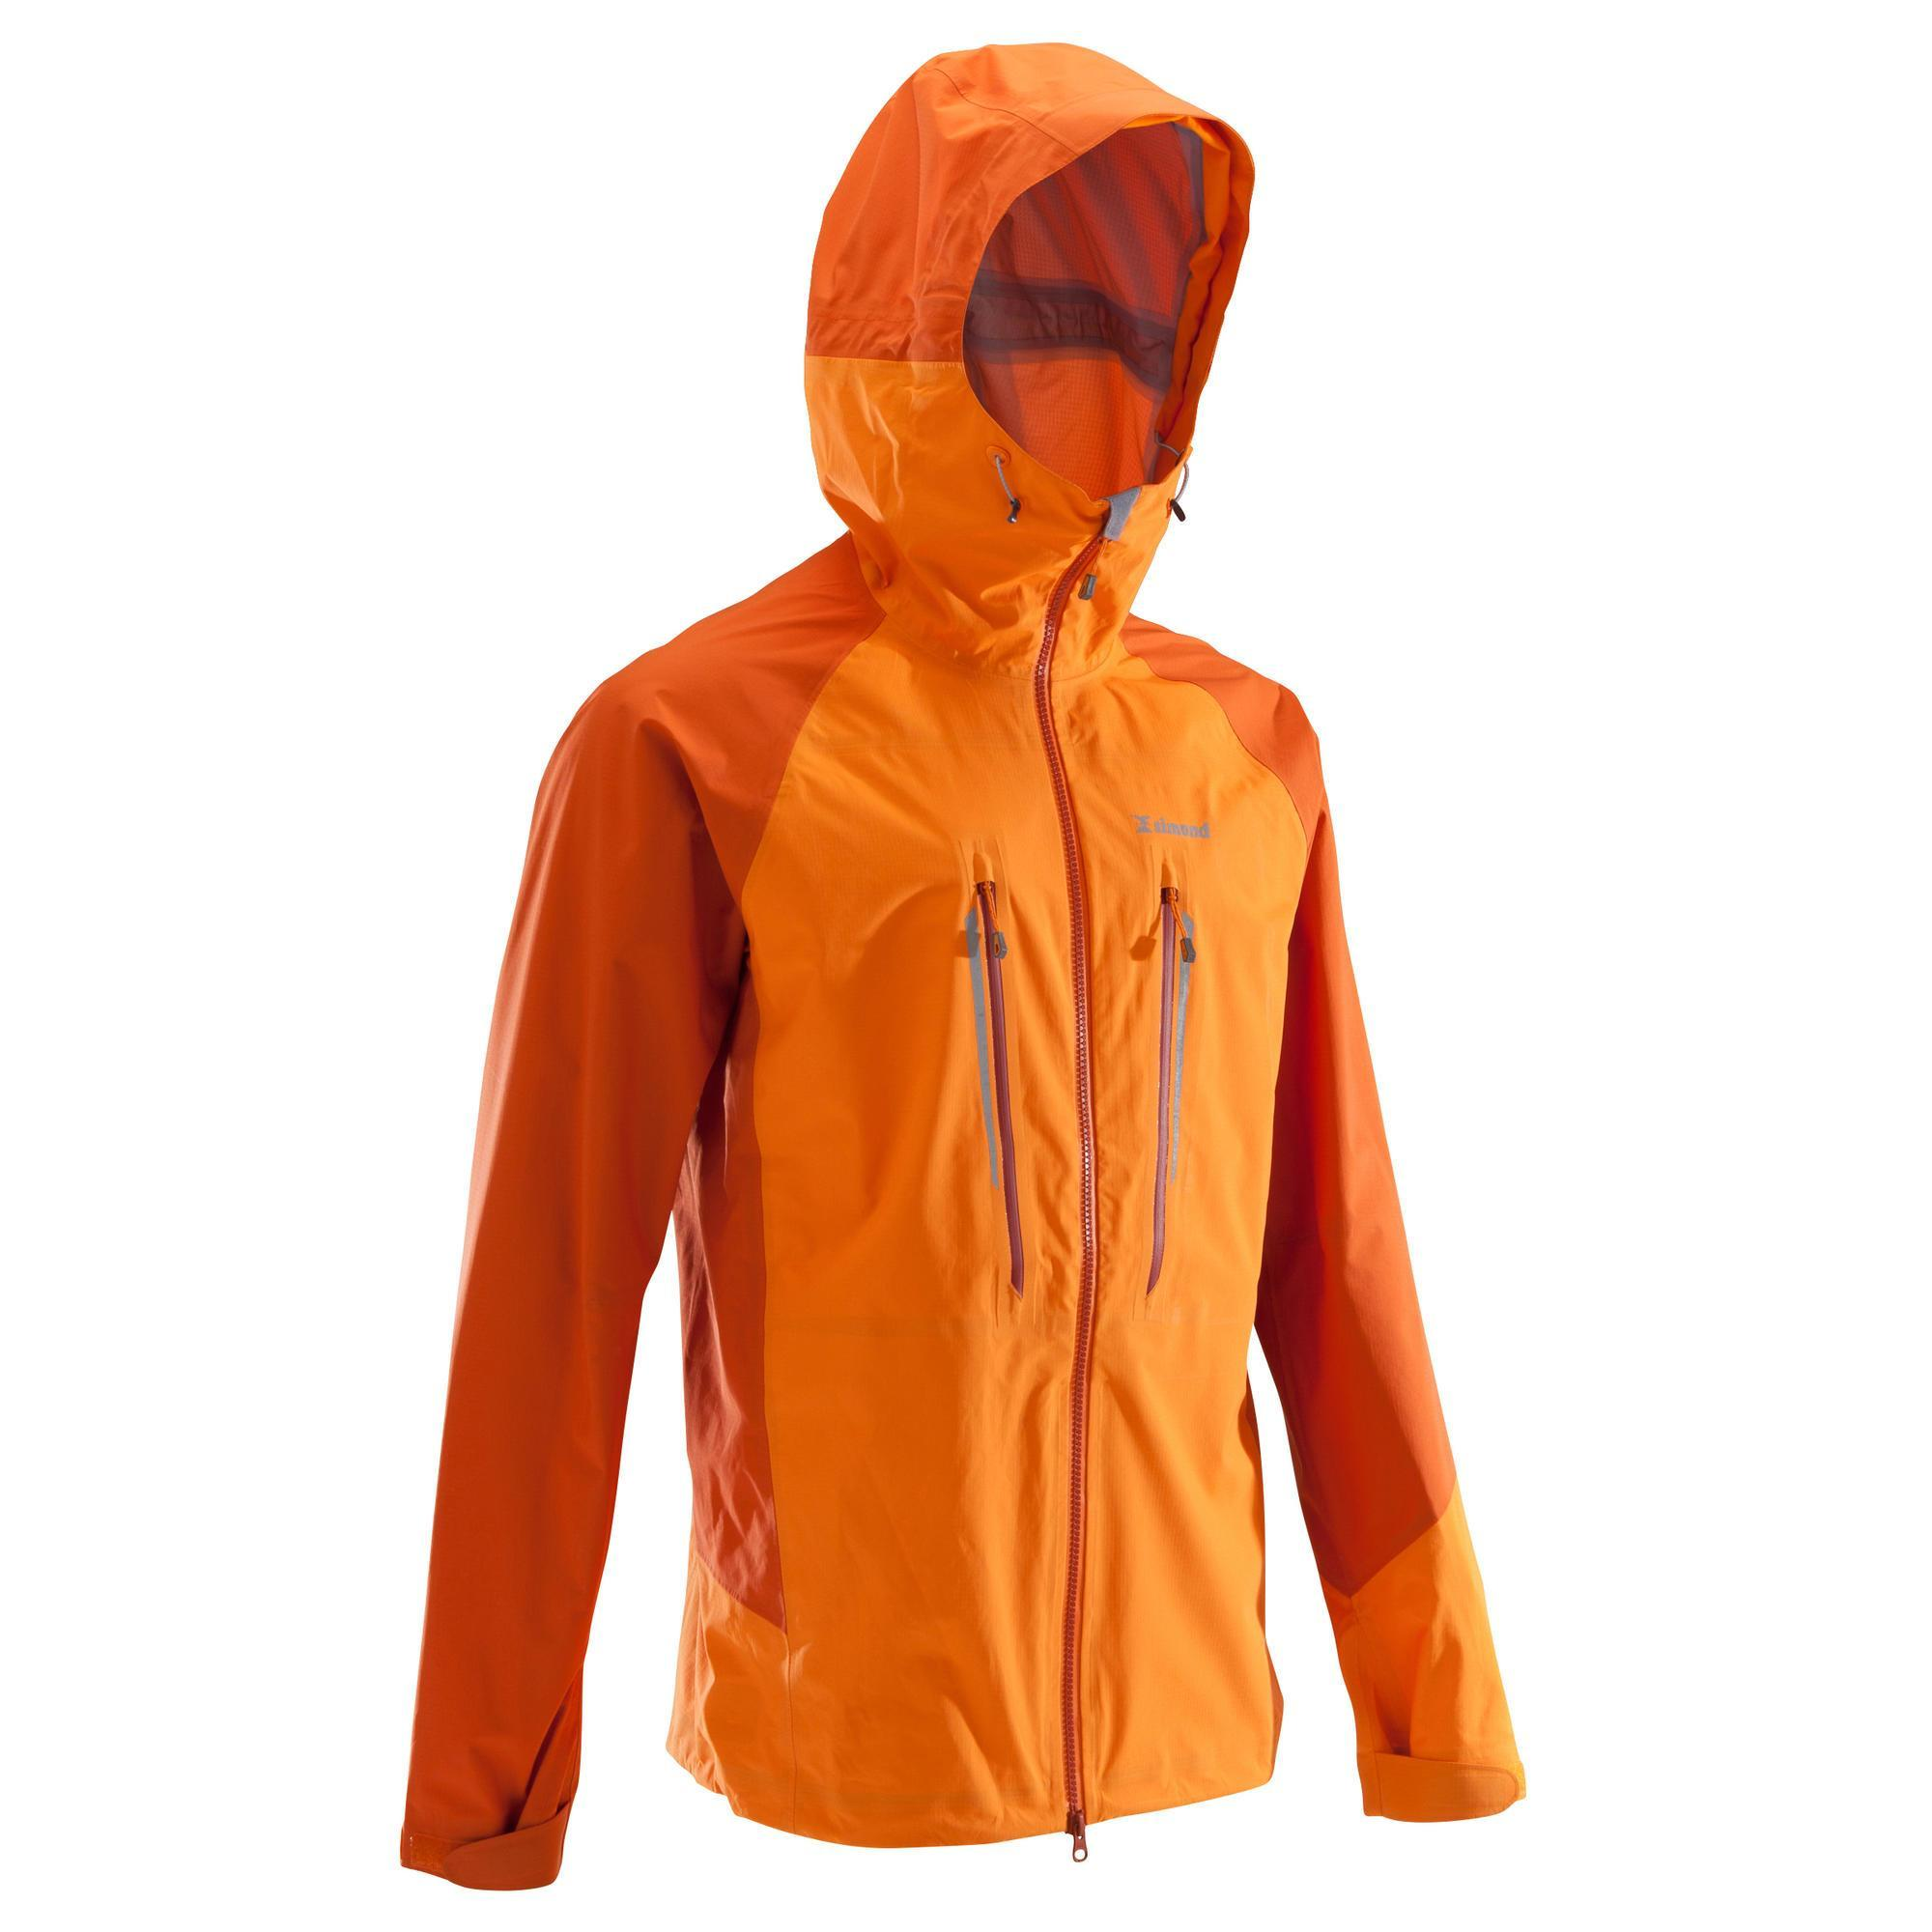 Simond Herenjas Alpinism Light